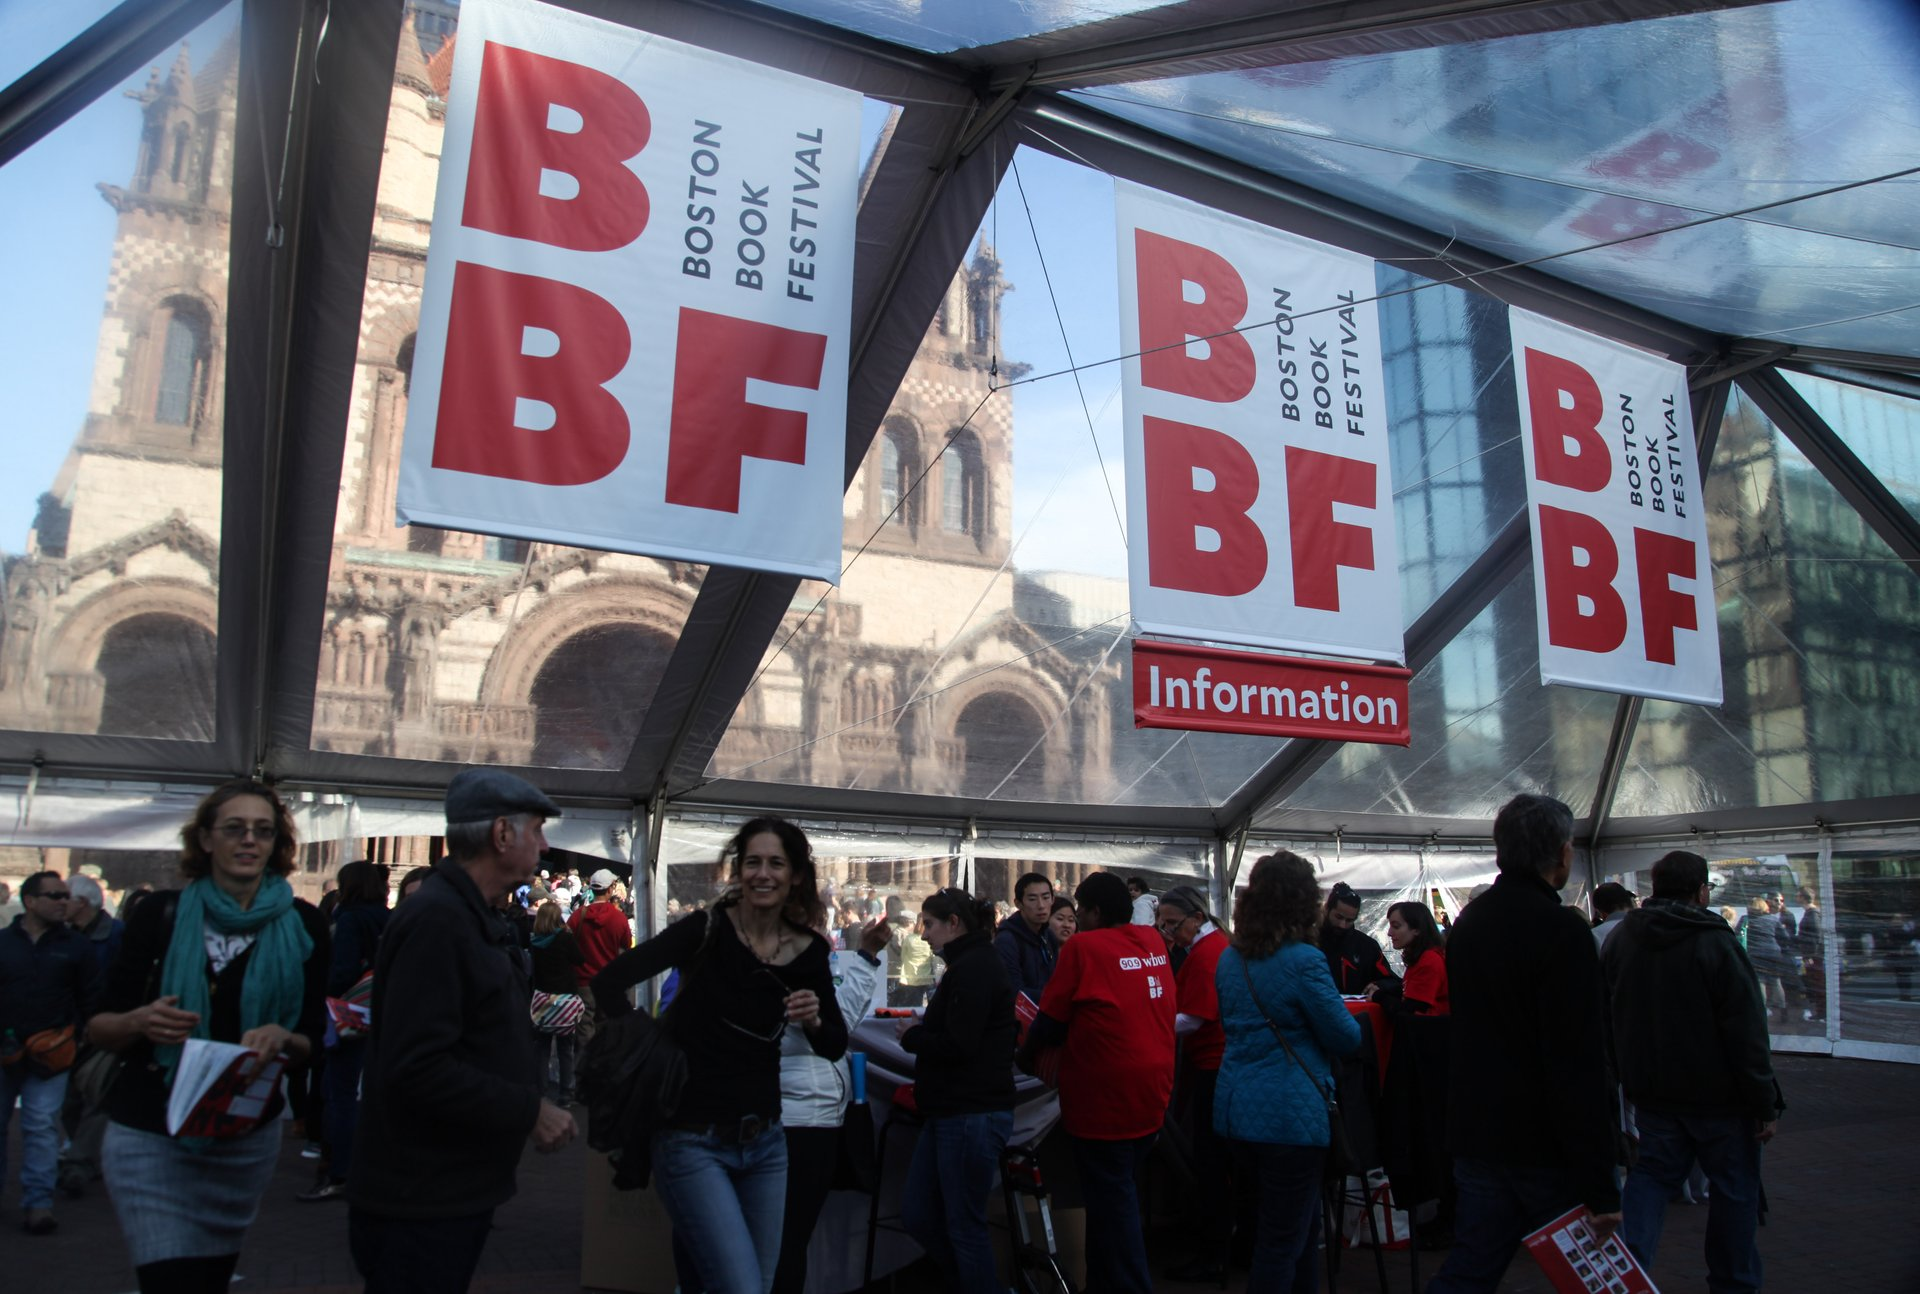 Boston Book Festival (BBF) in Boston - Best Season 2020